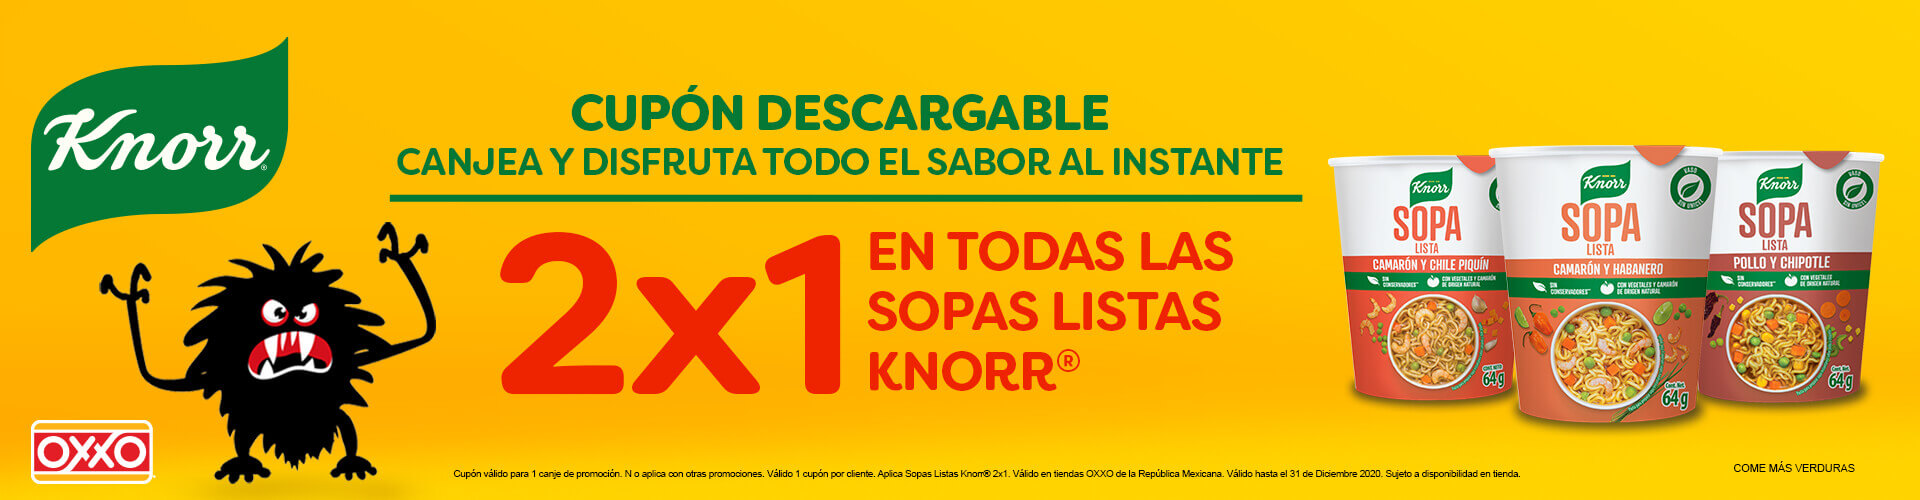 OXXO Cupones Knorr P12 2020